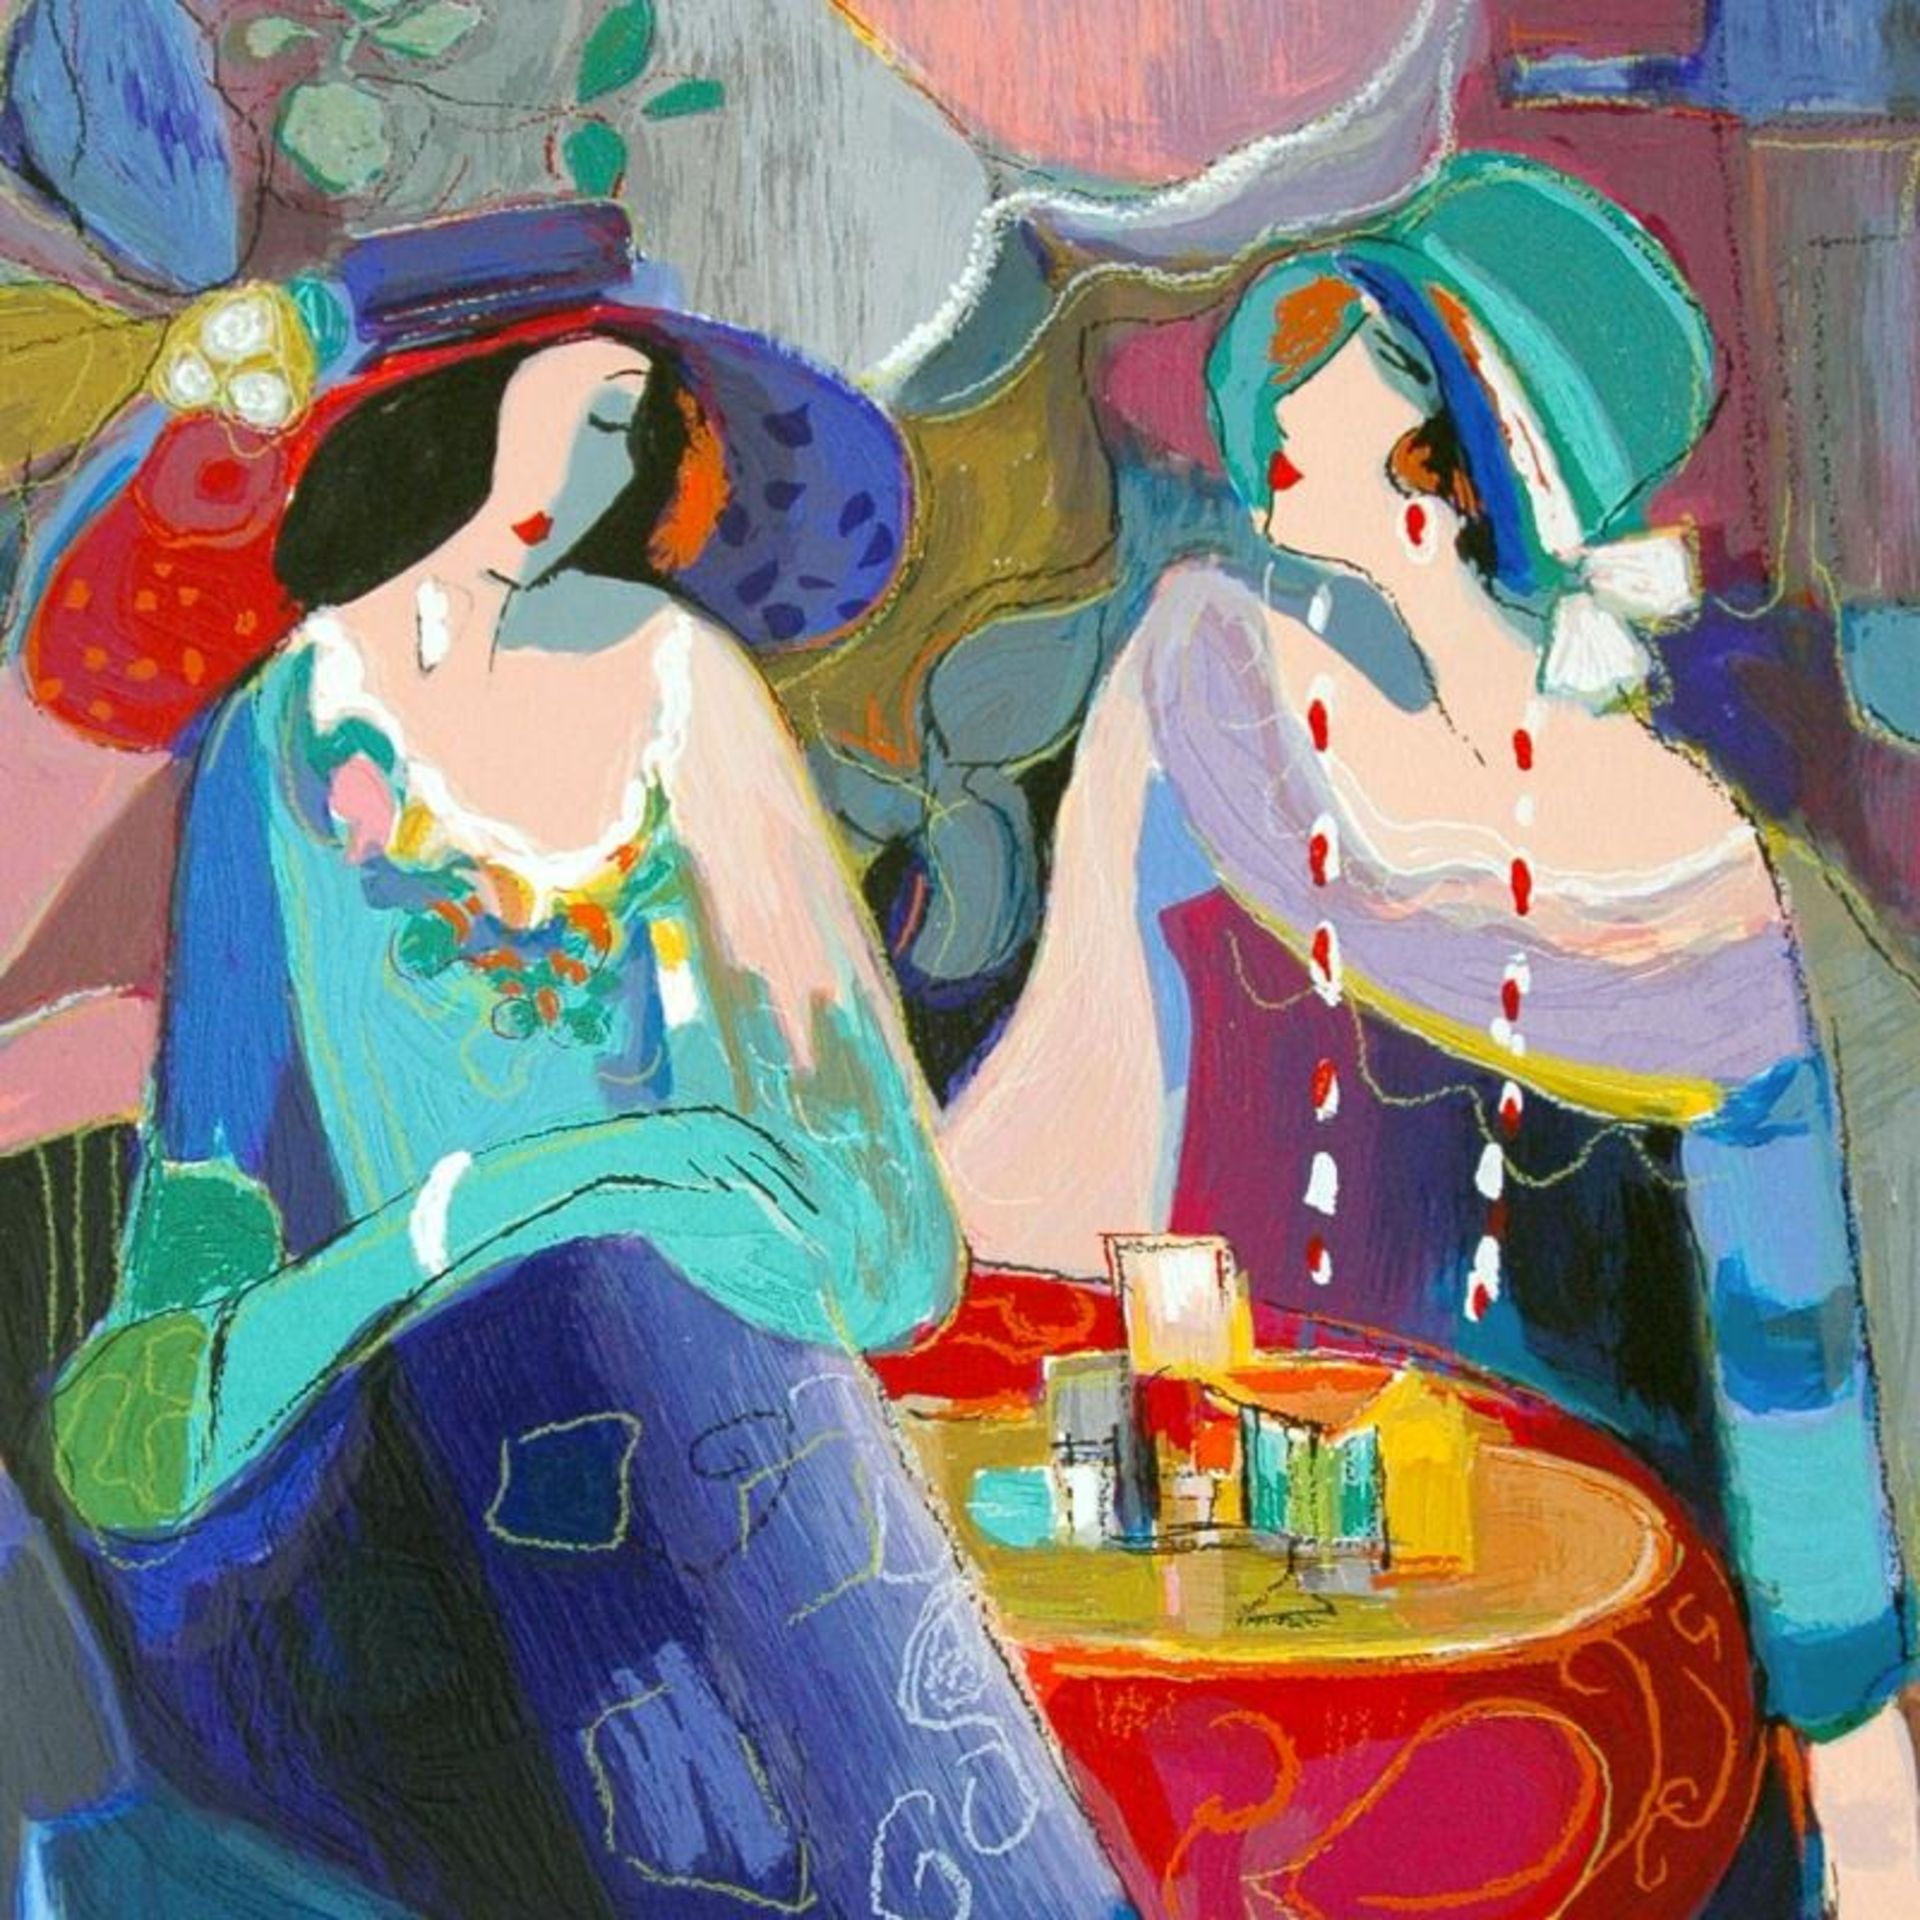 """Isaac Maimon, """"Pastel Gathering"""" Limited Edition Serigraph, Numbered and Hand Si - Image 2 of 2"""